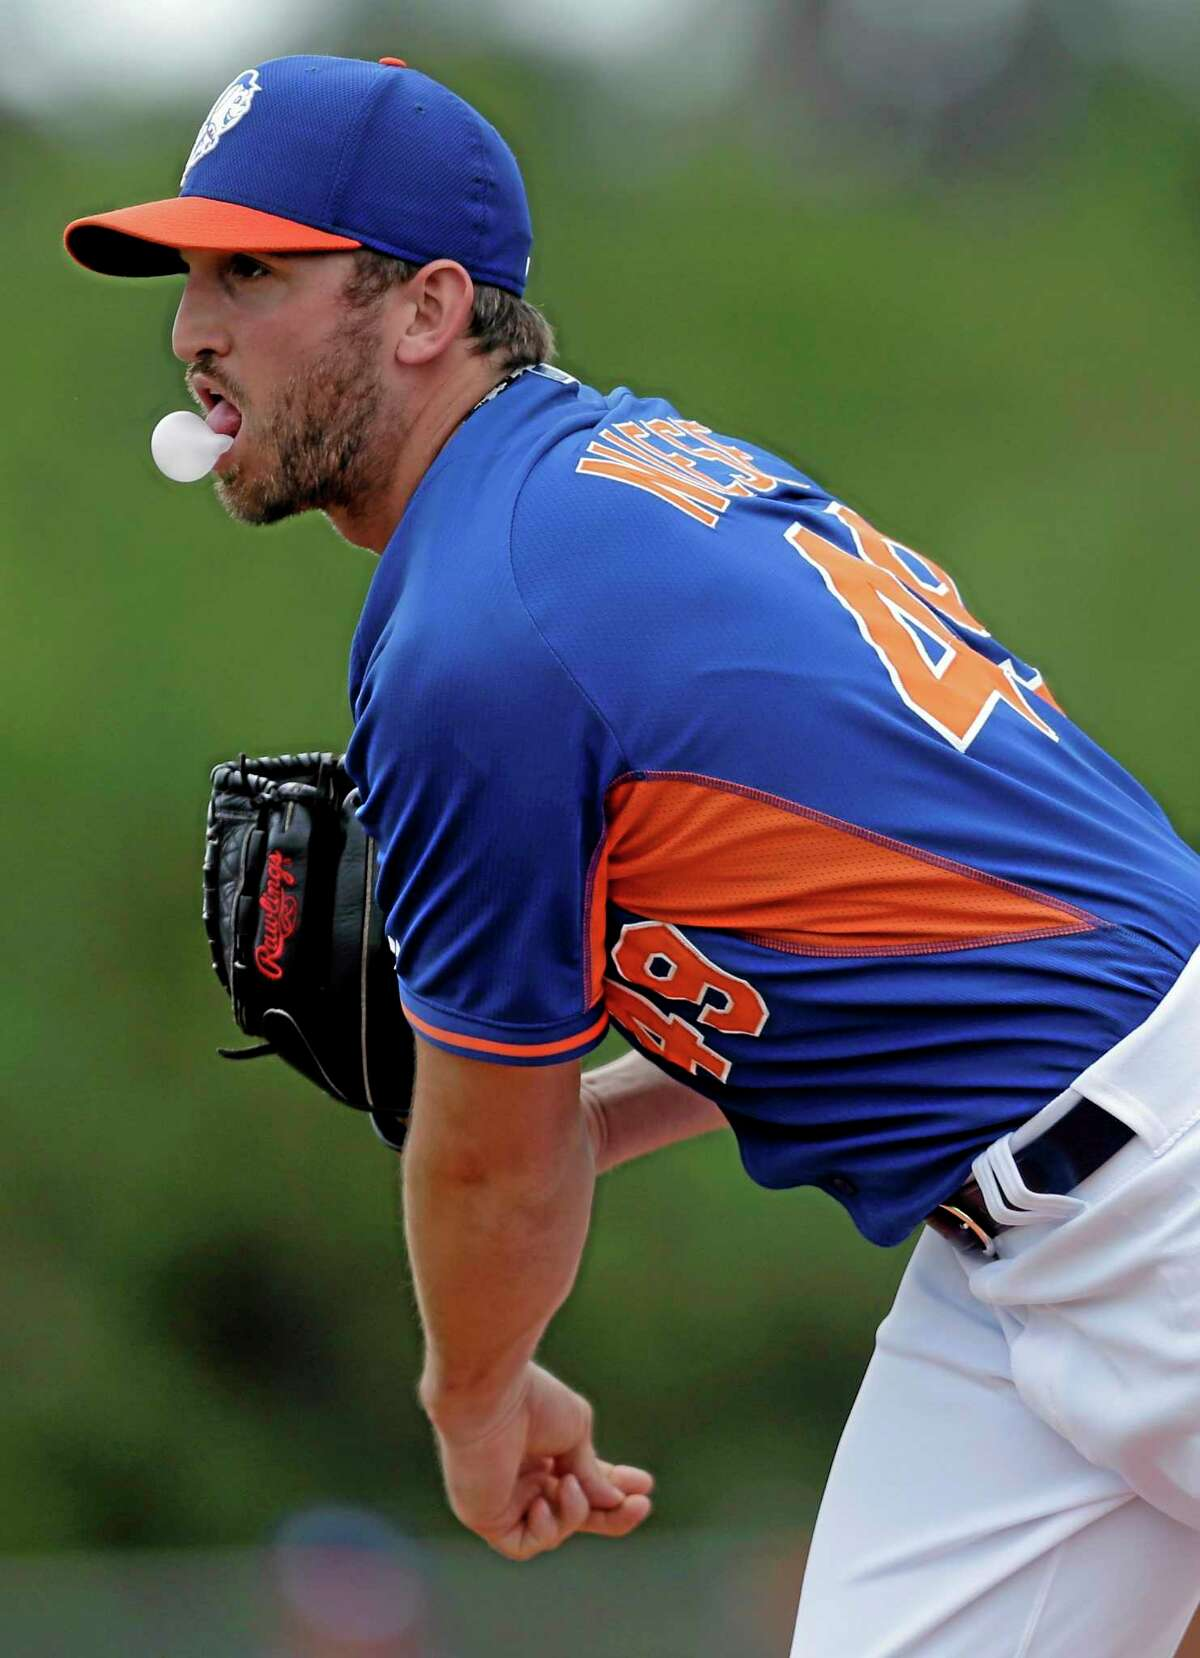 New York Mets starter Jon Niese had an MRI on his shoulder Wednesday, but no major issues were found.